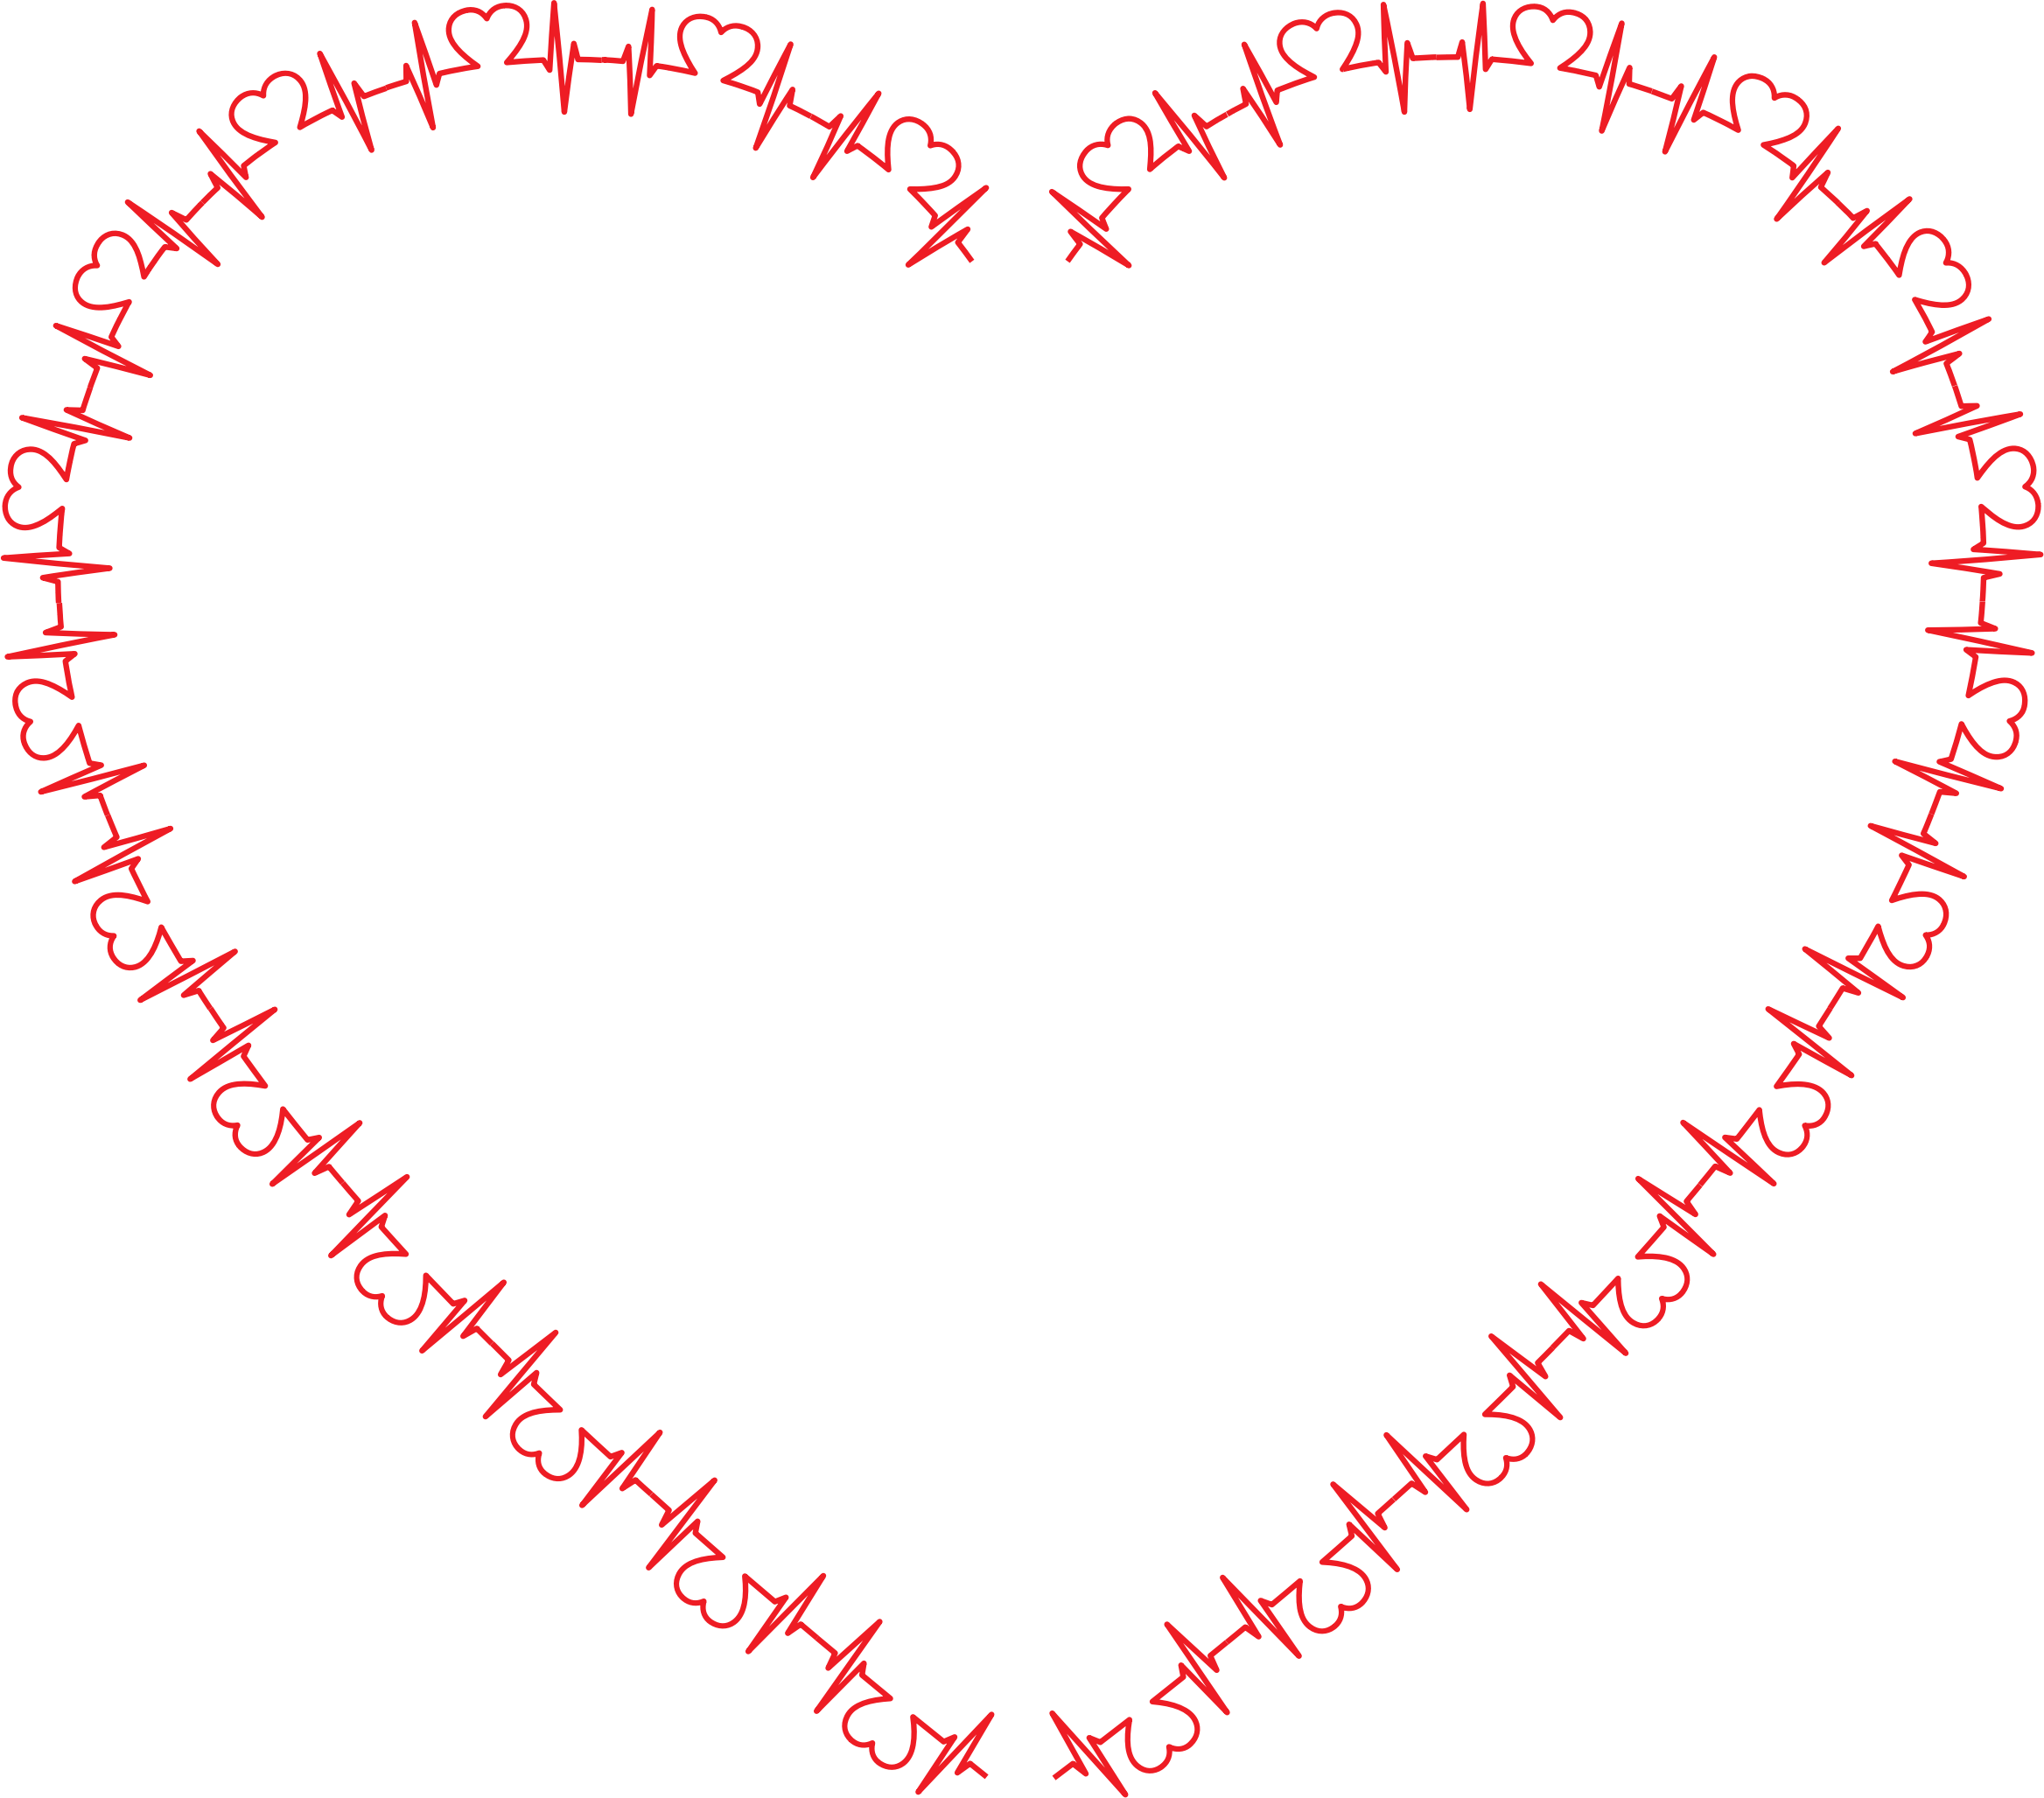 Ekg svg heart shaped. Rhythm icons png free